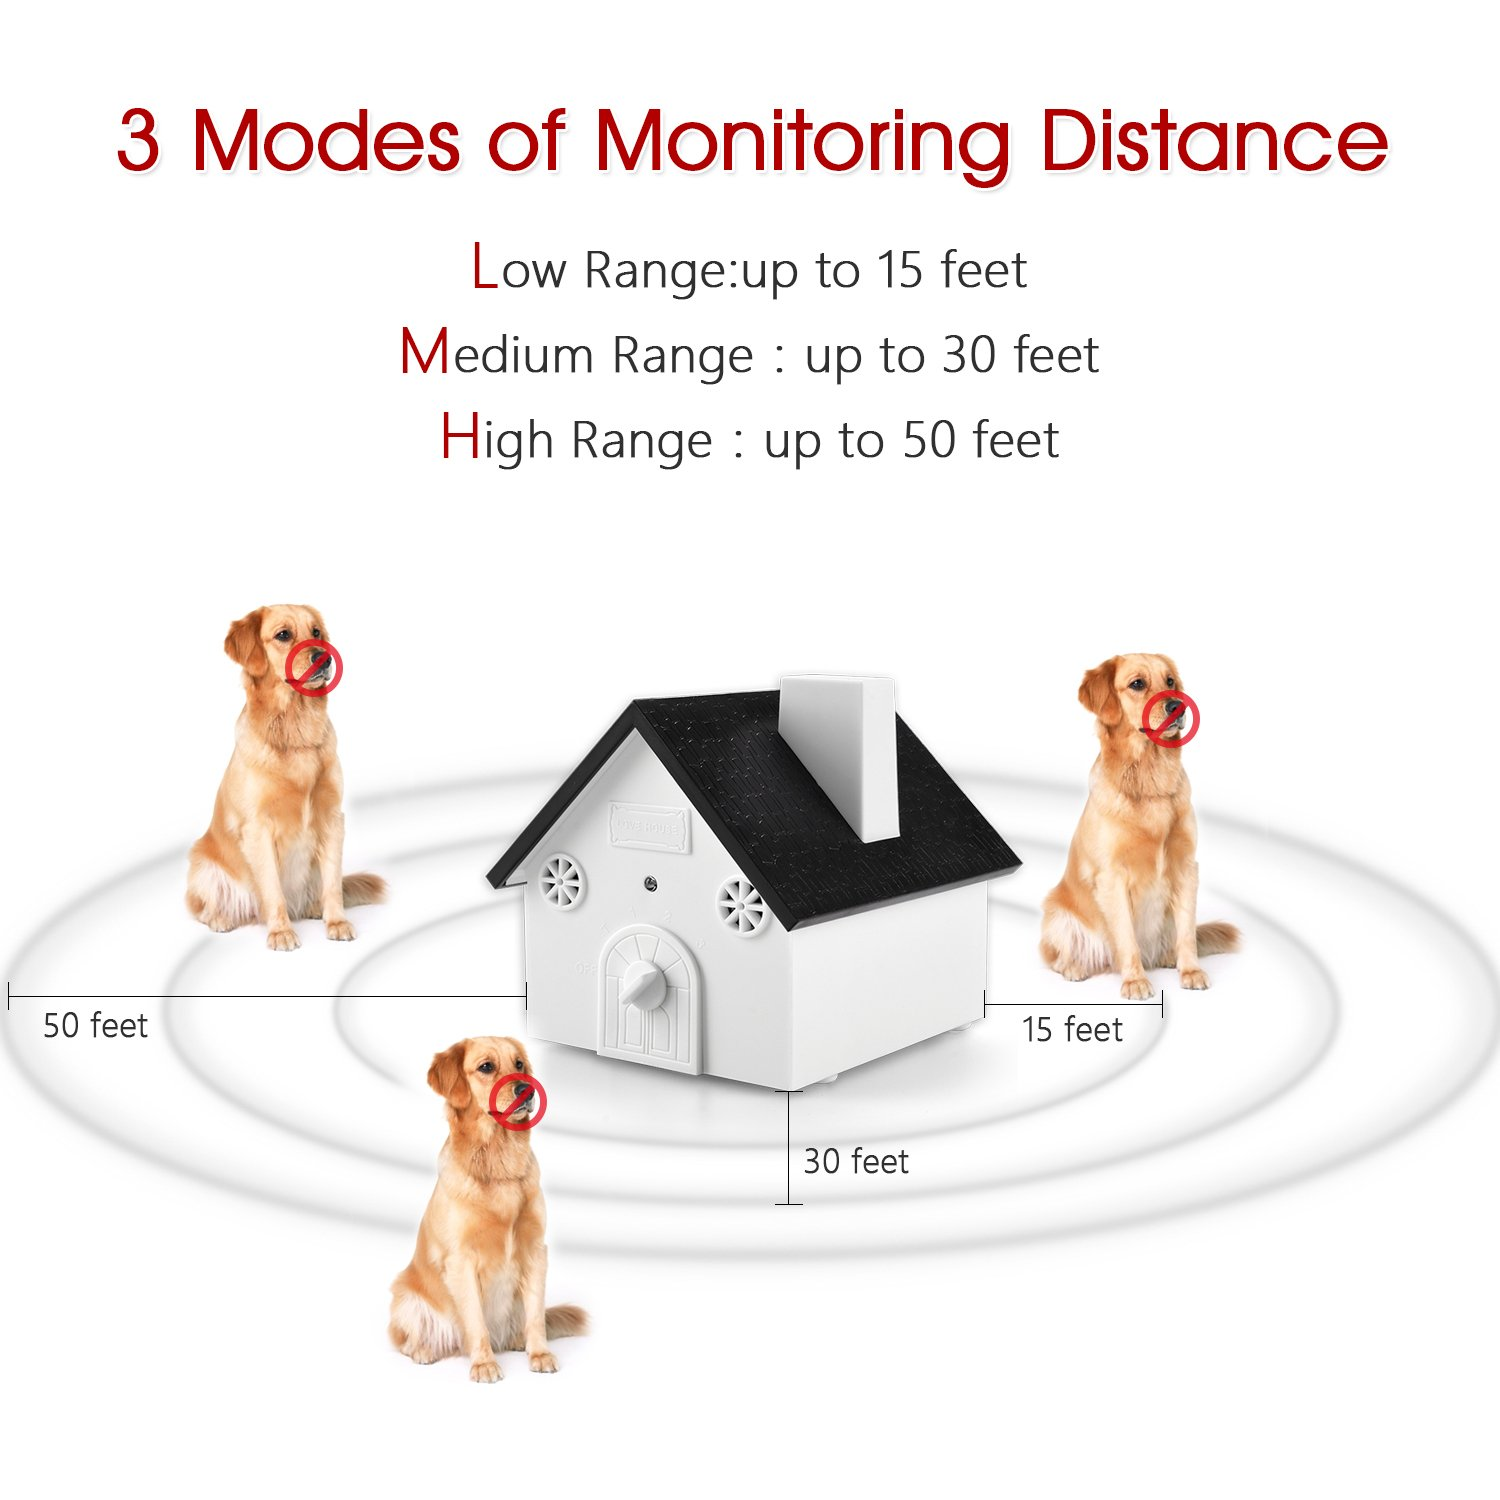 Homitem Ultrasonic Outdoor Bark Controller Anti-barking Devices Sonic Bark Deterrent by, No Harm To Dogs or other Pets,Plant,Human,Easy Hanging/Mounting,3 Modes,Birdhouse Shaped(White) by Homitem (Image #6)